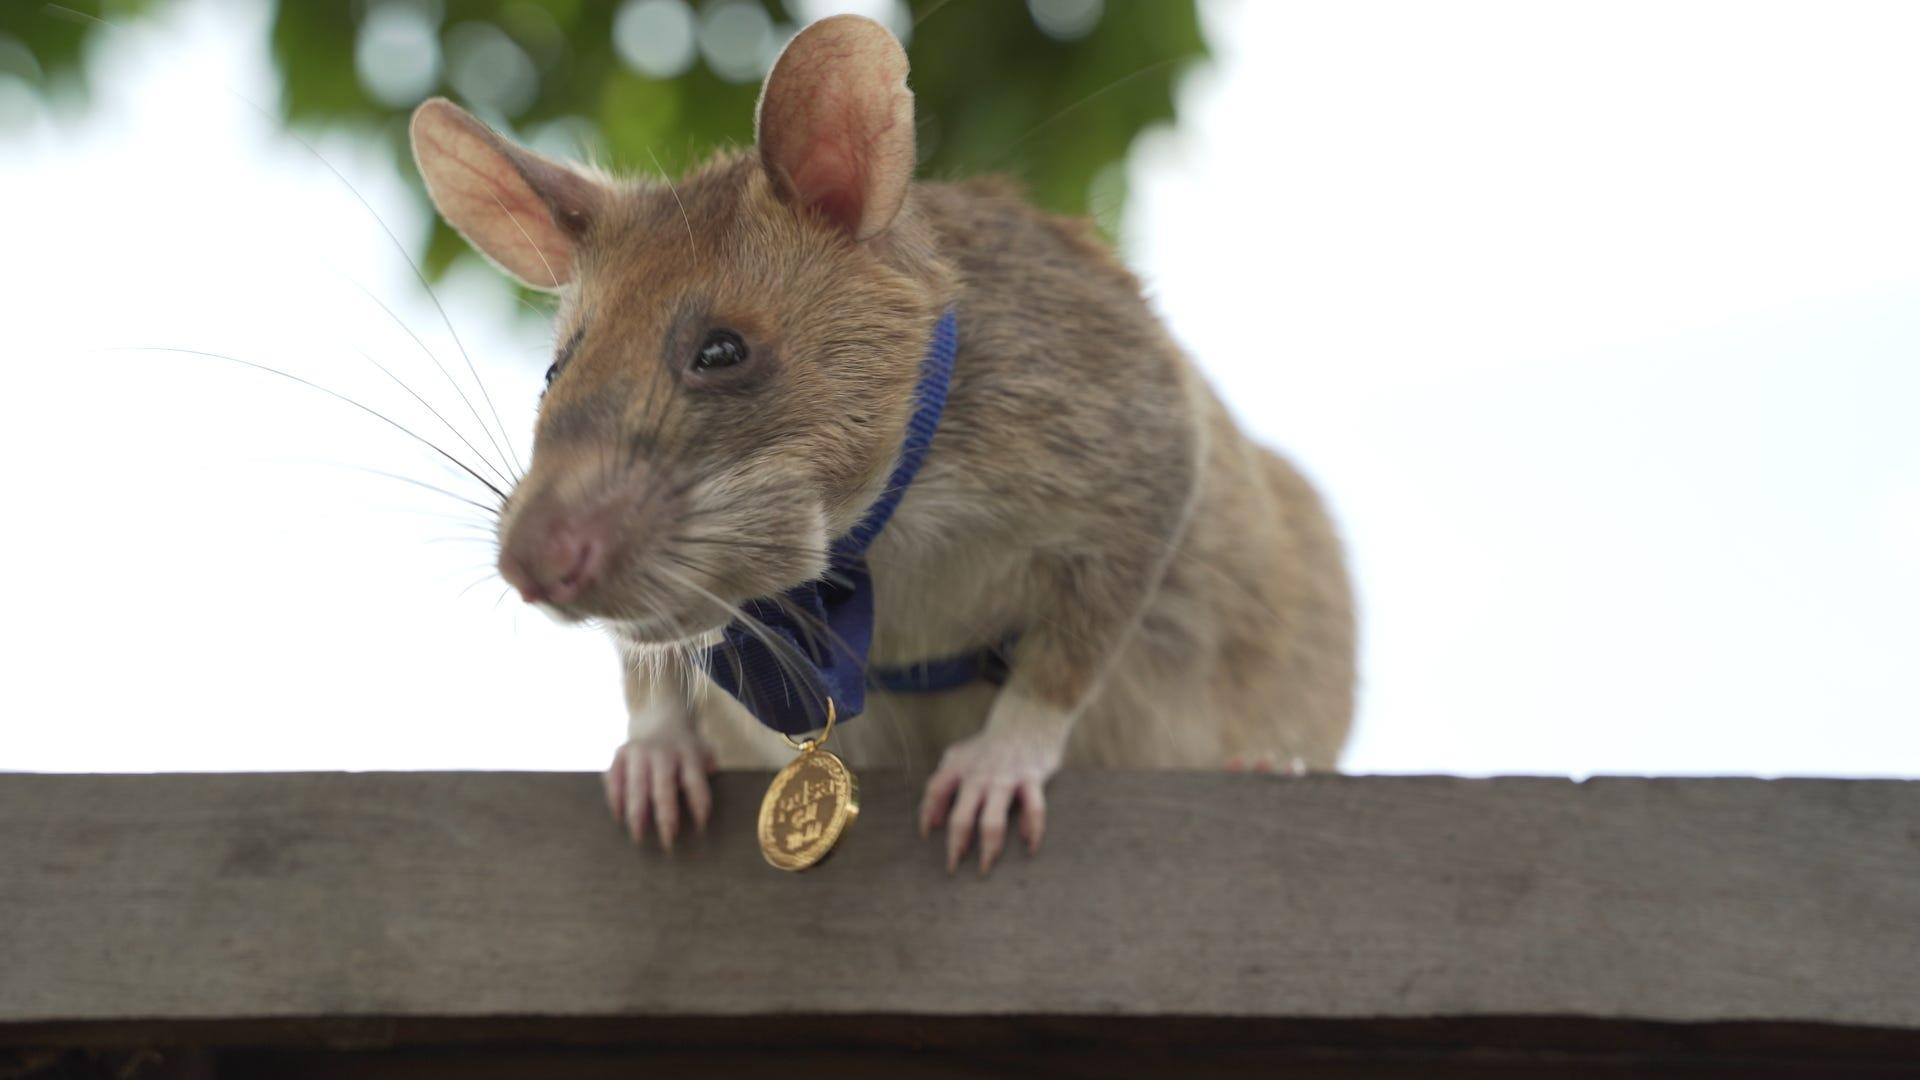 Meet Magawa, the 'hero rat' awarded a bravery medal for detecting dozens of landmines